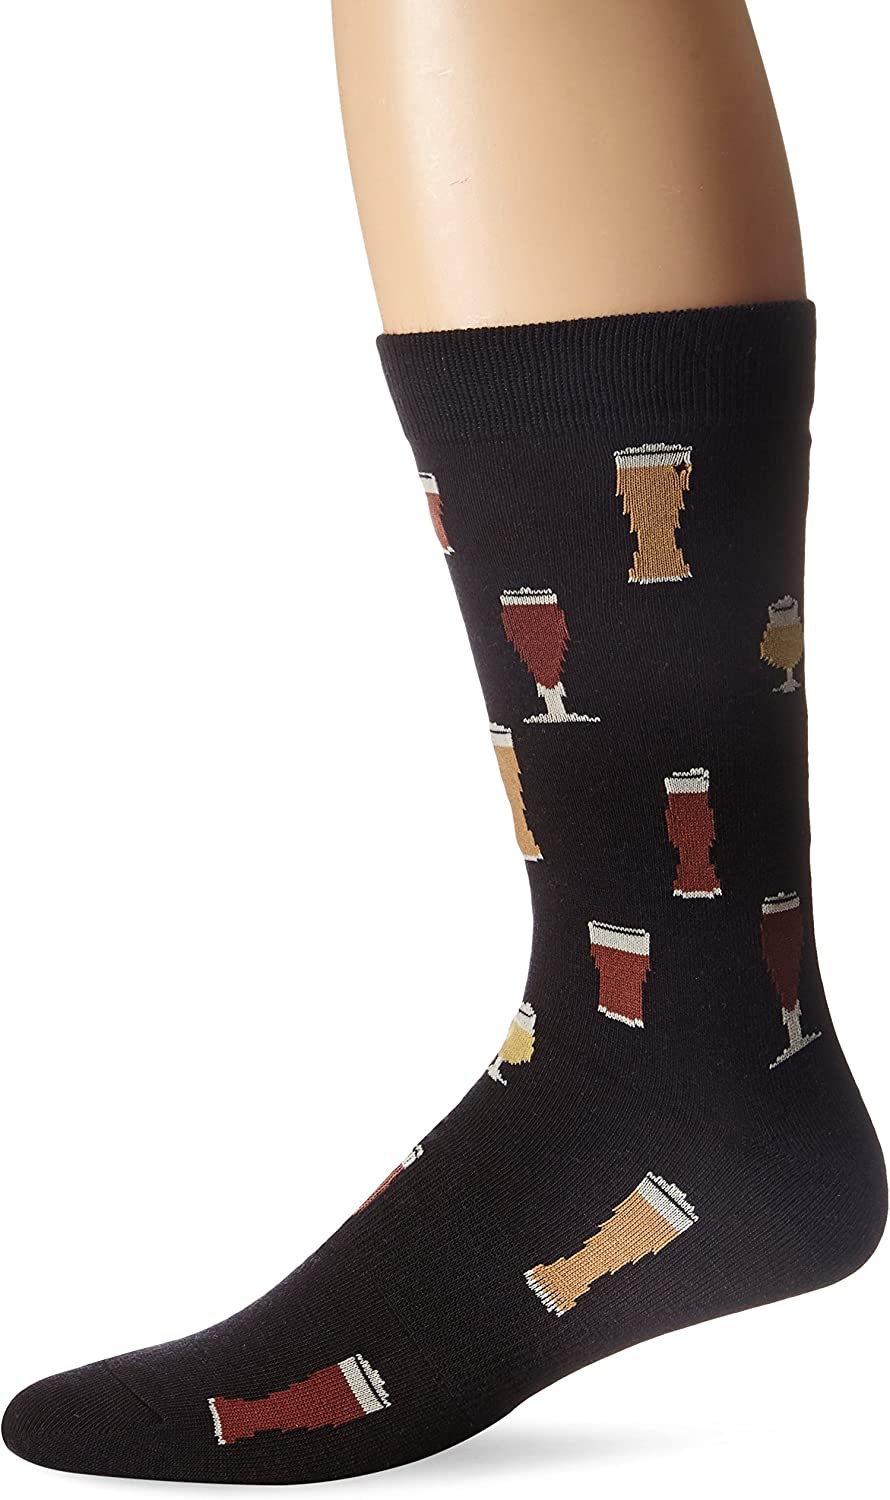 K. Bell Socks mens Food and Drink Casual Novelty Crew Socks